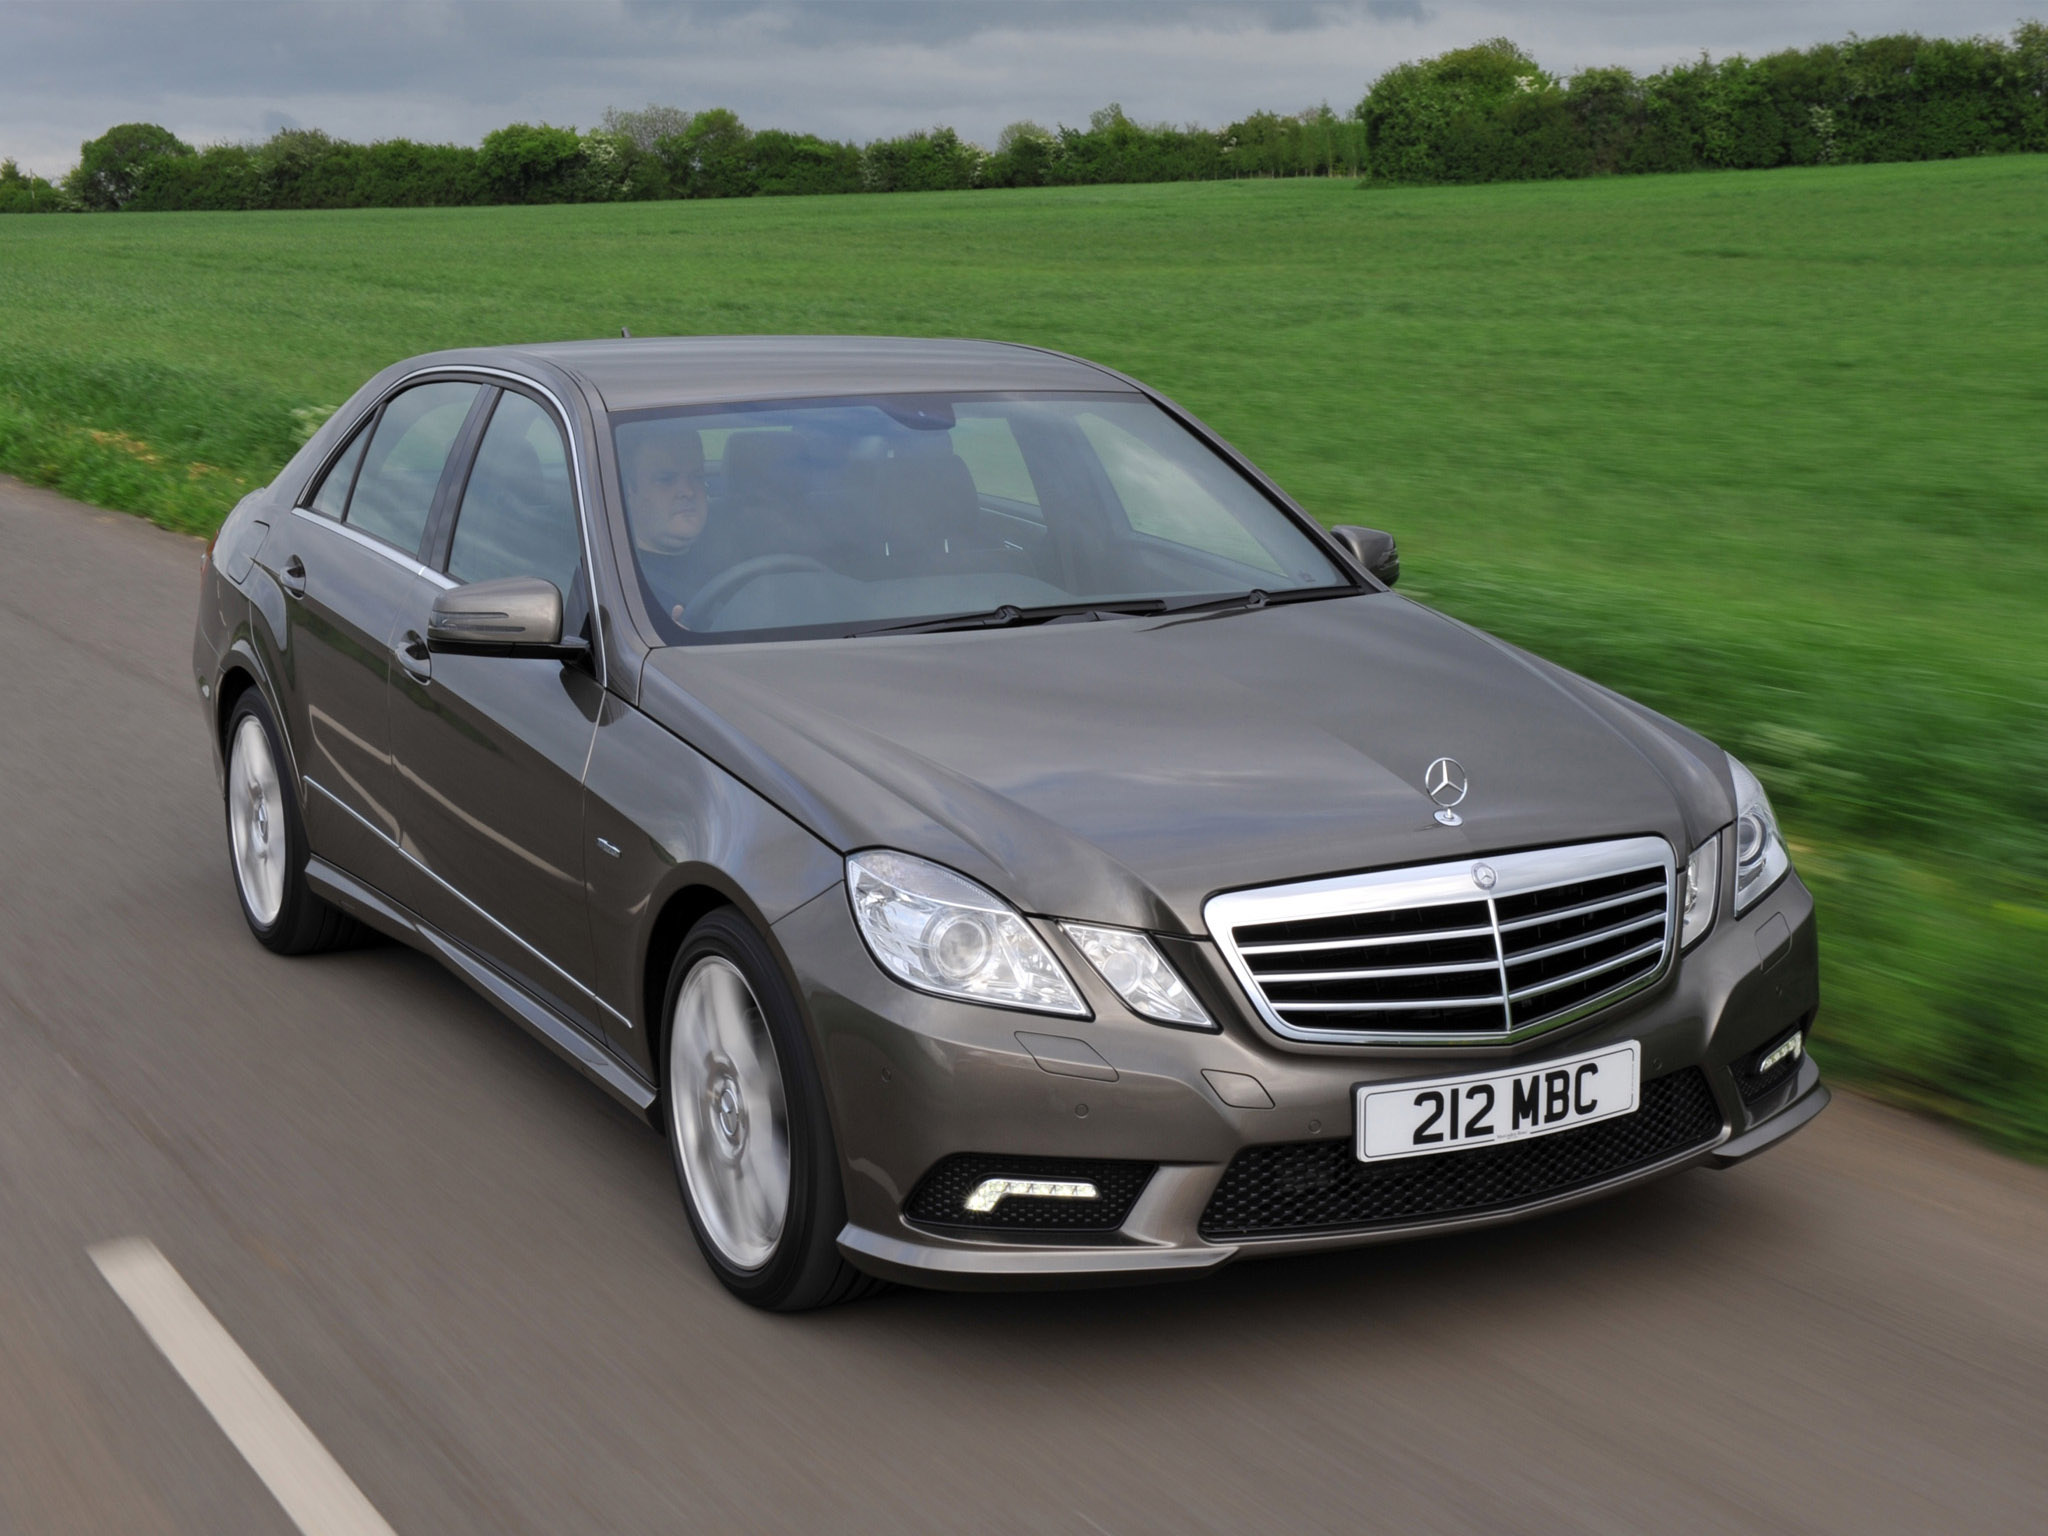 Mercedes-benz e220cdi photo - 5